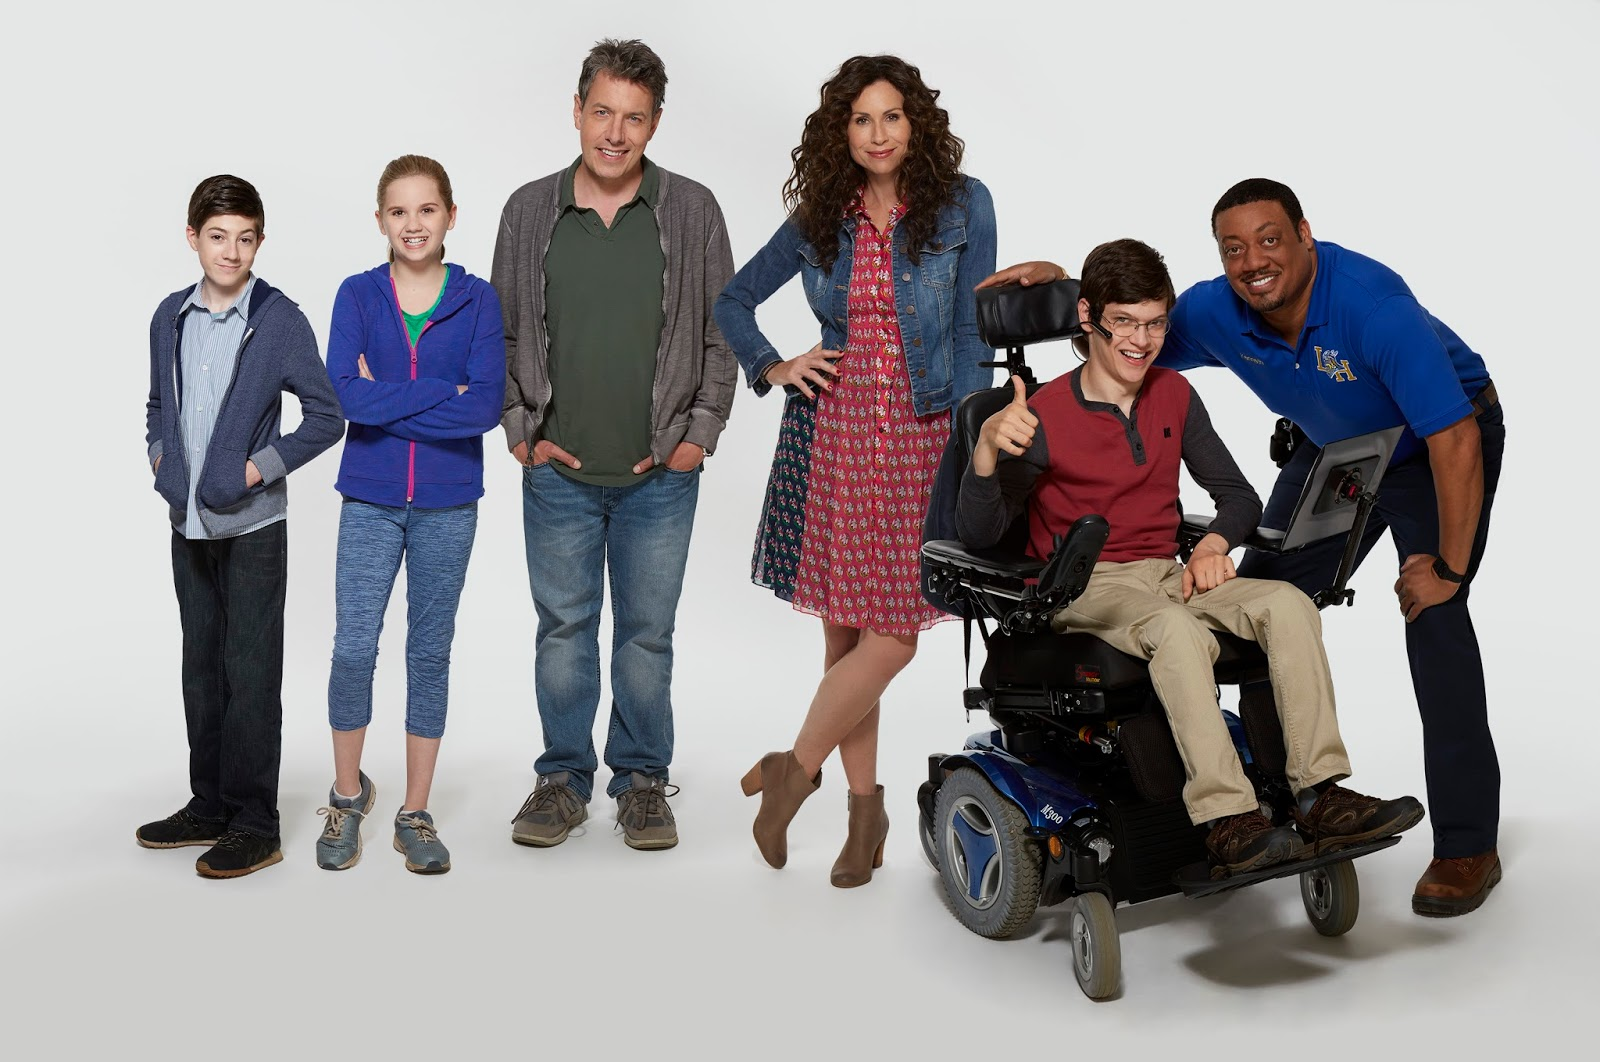 Minnie Driver-Micah Fowler-Discapacidad-serie-ABC Family-blog